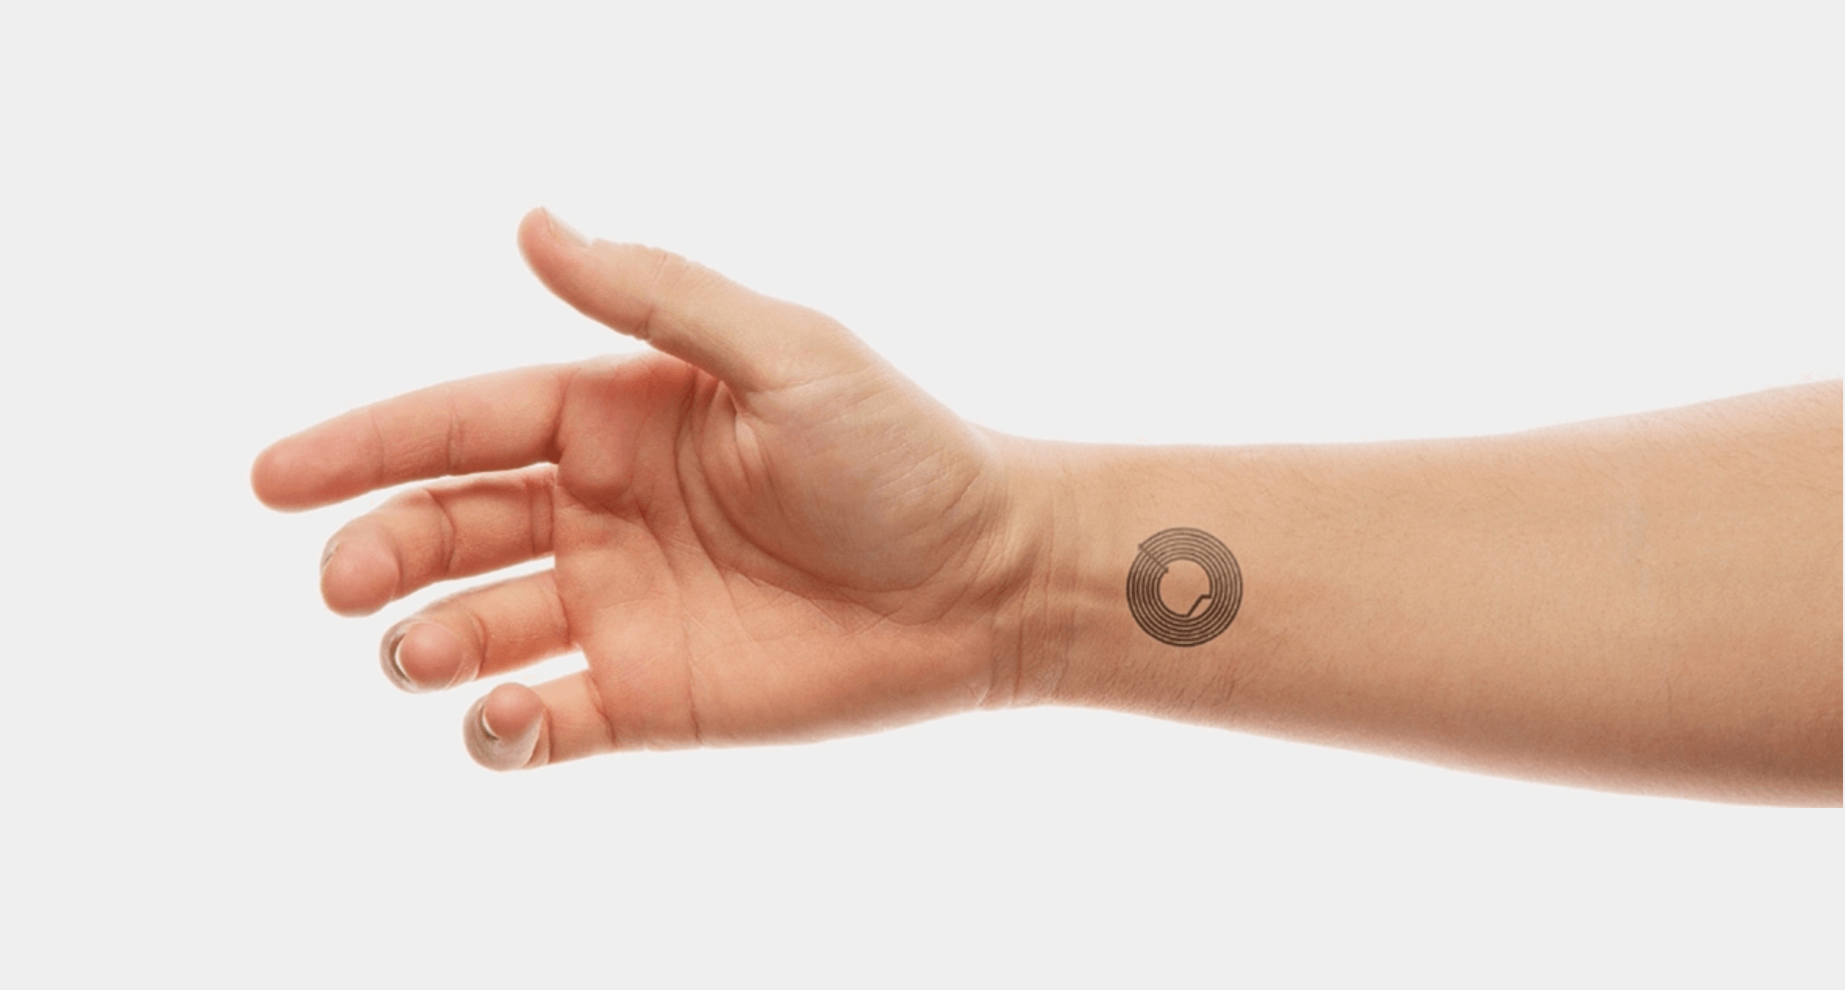 Smart Skin, an electronic tattoo for event identification